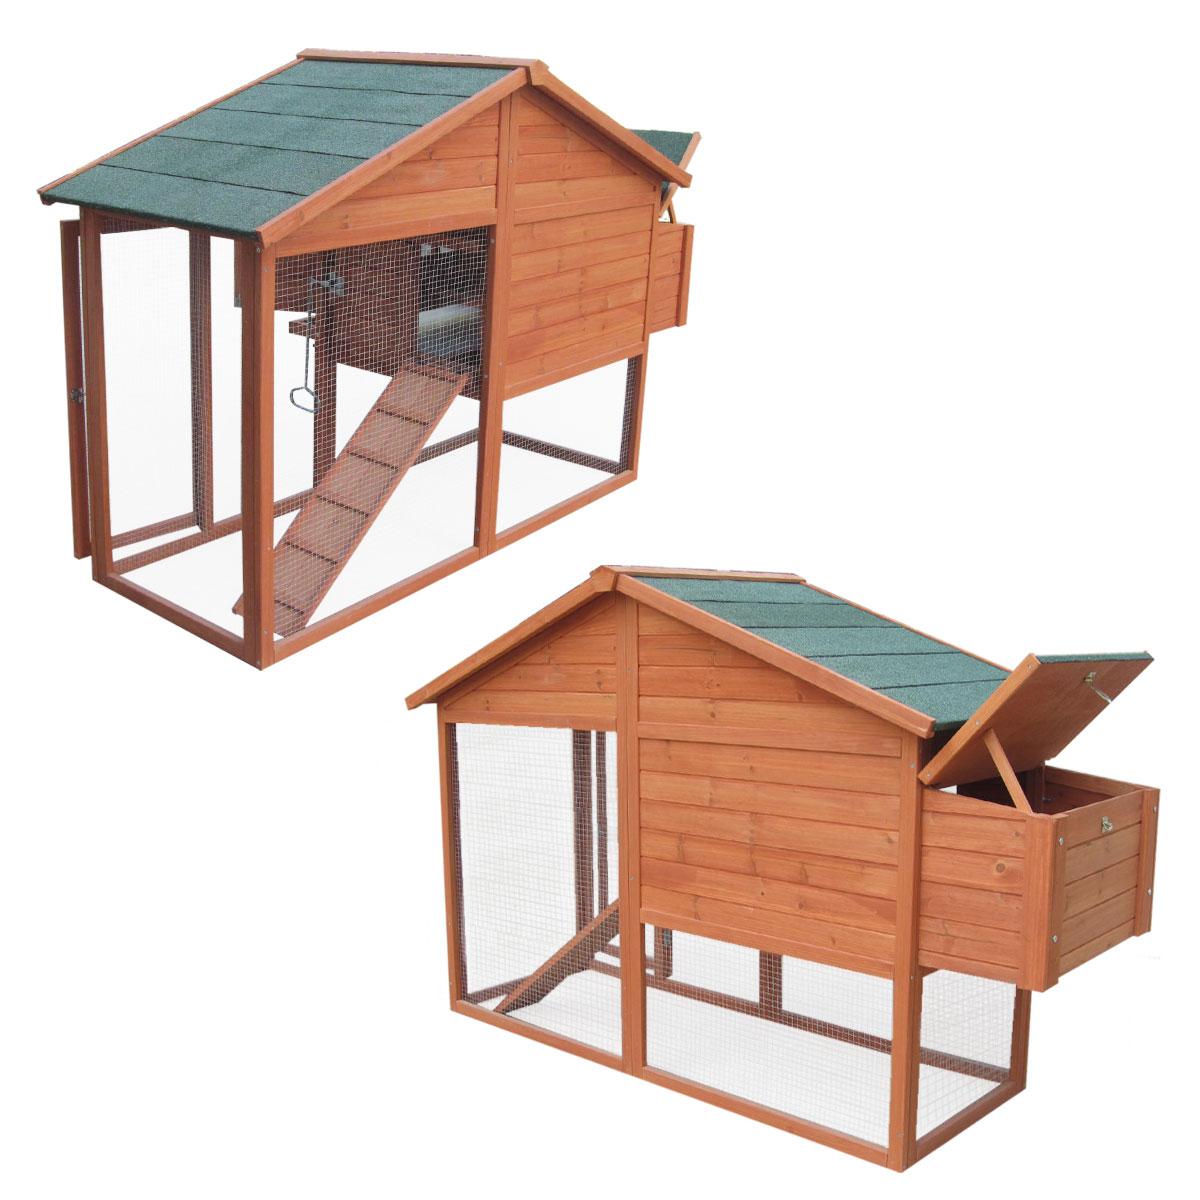 Home product 12 bird chicken coop - Extra Large Chicken House With Run And Nest Box Kct